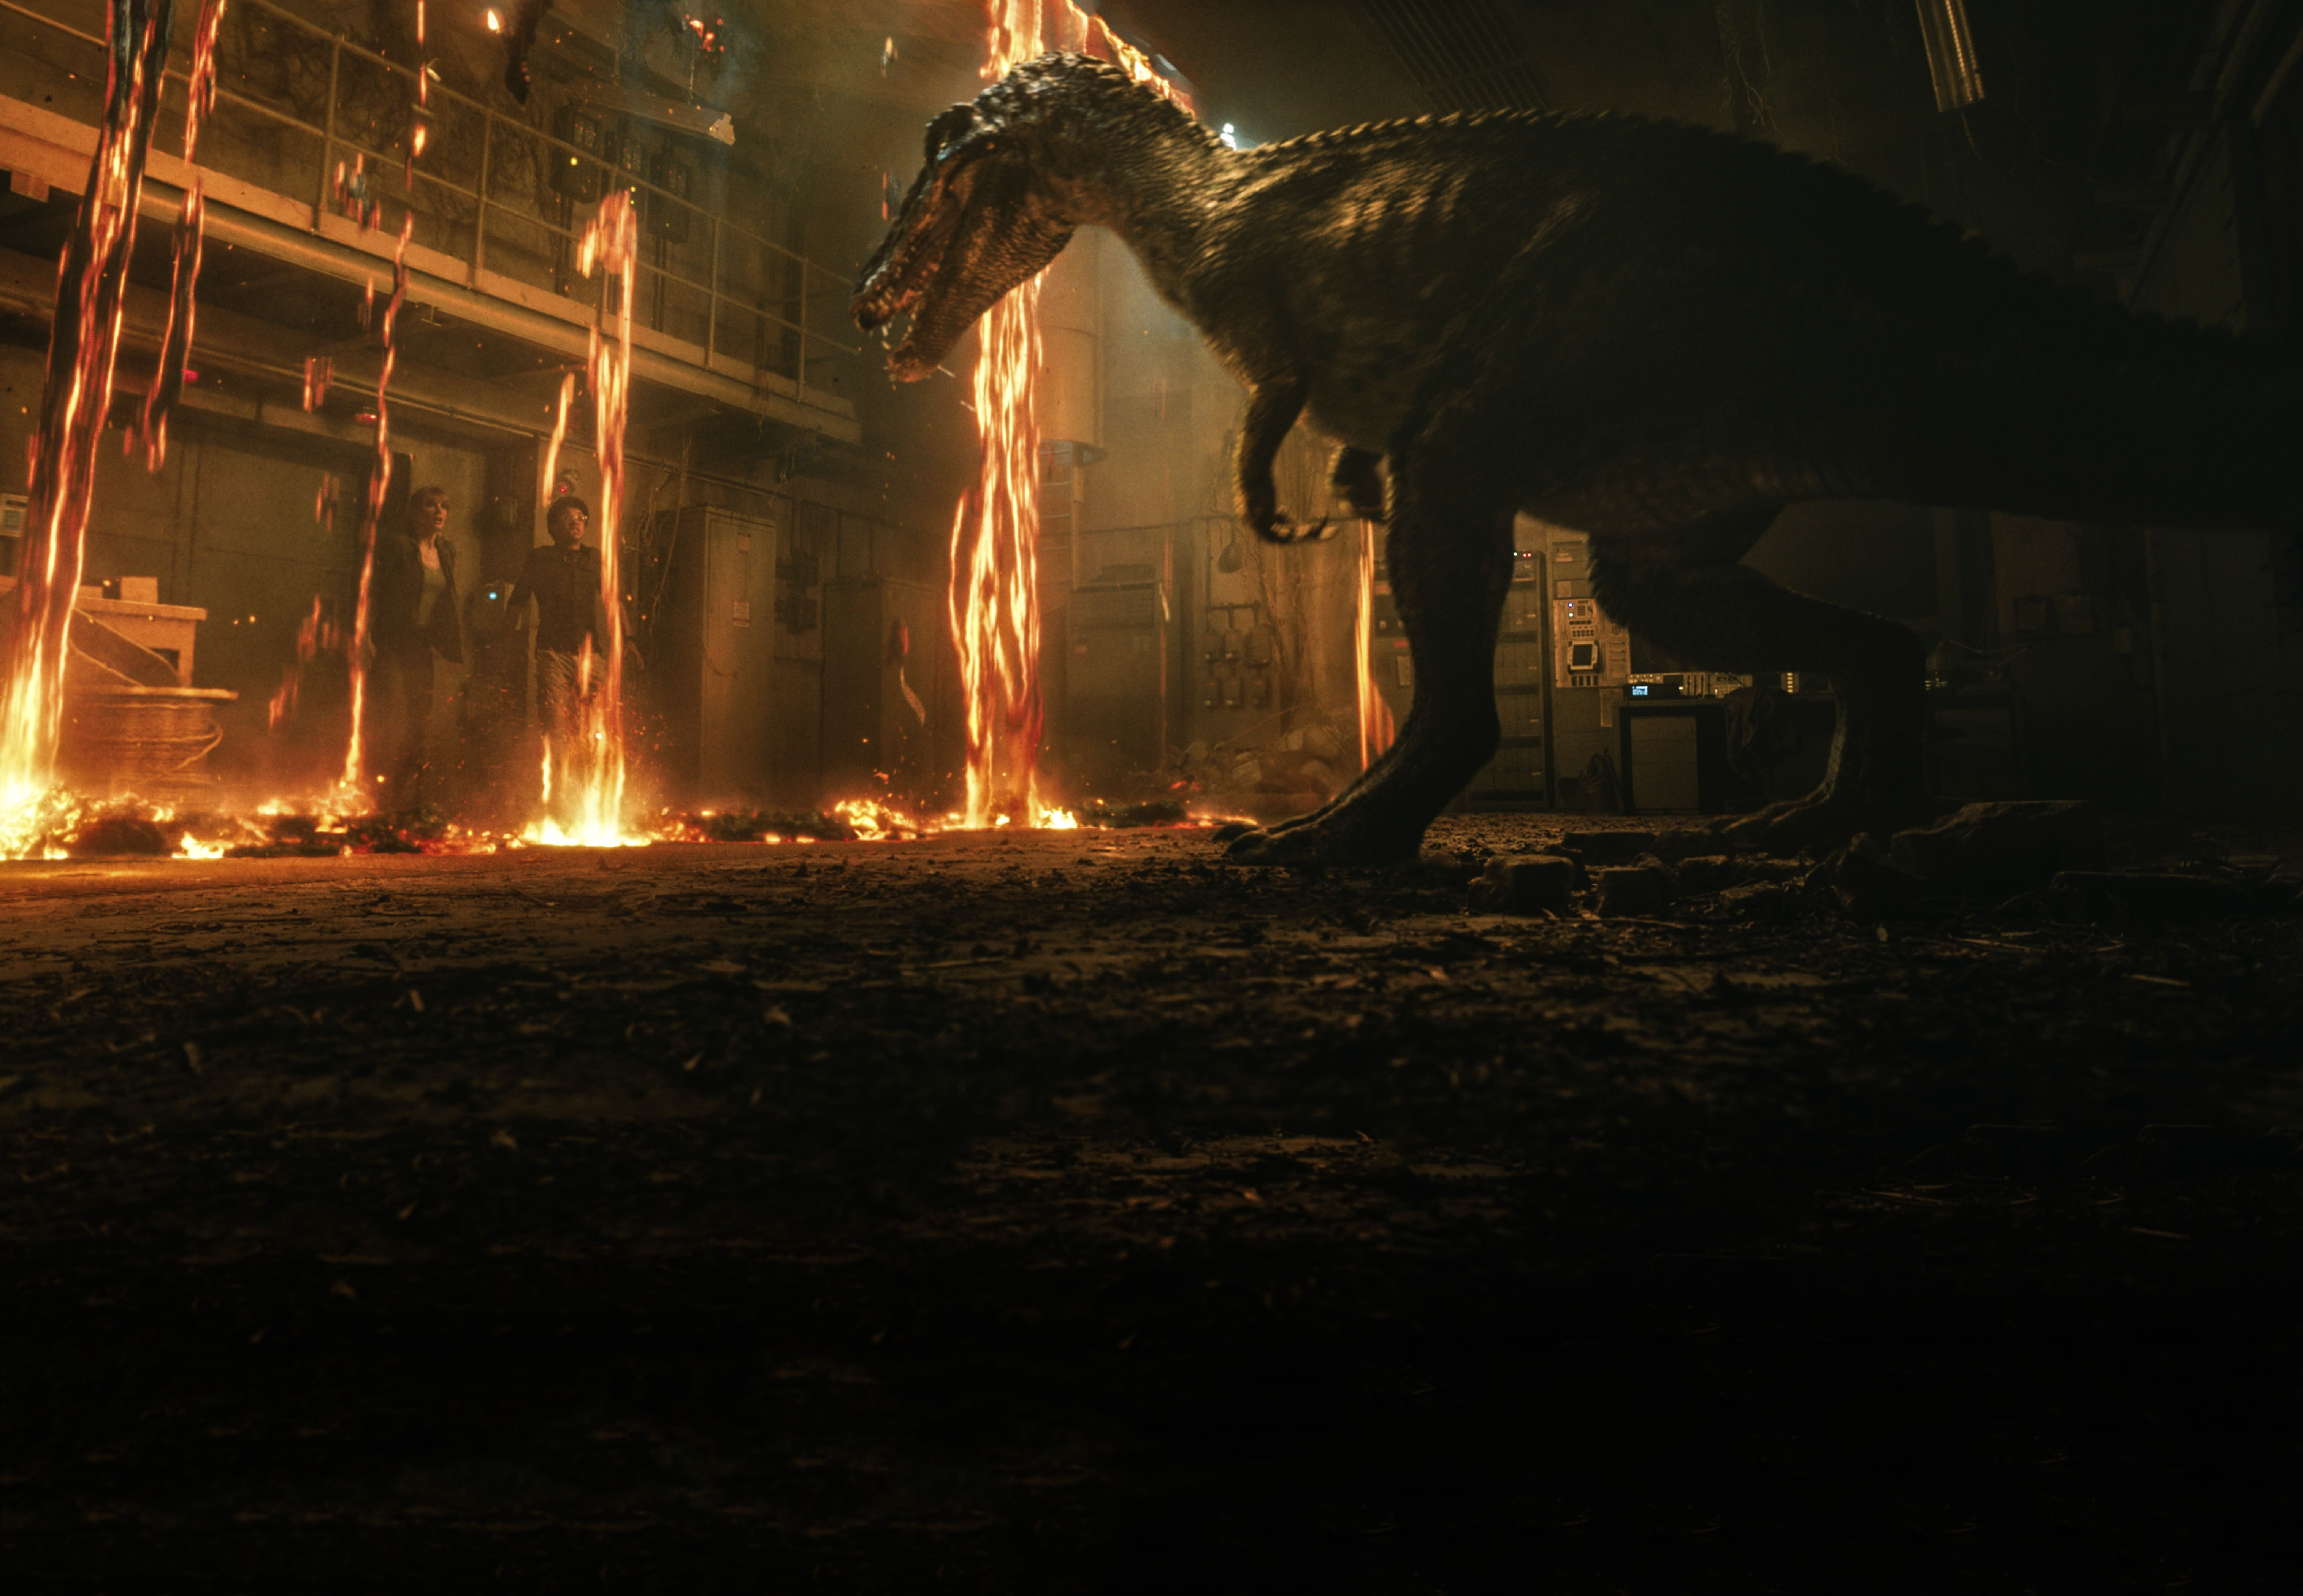 Jurassic World: Fallen Kingdom eruption